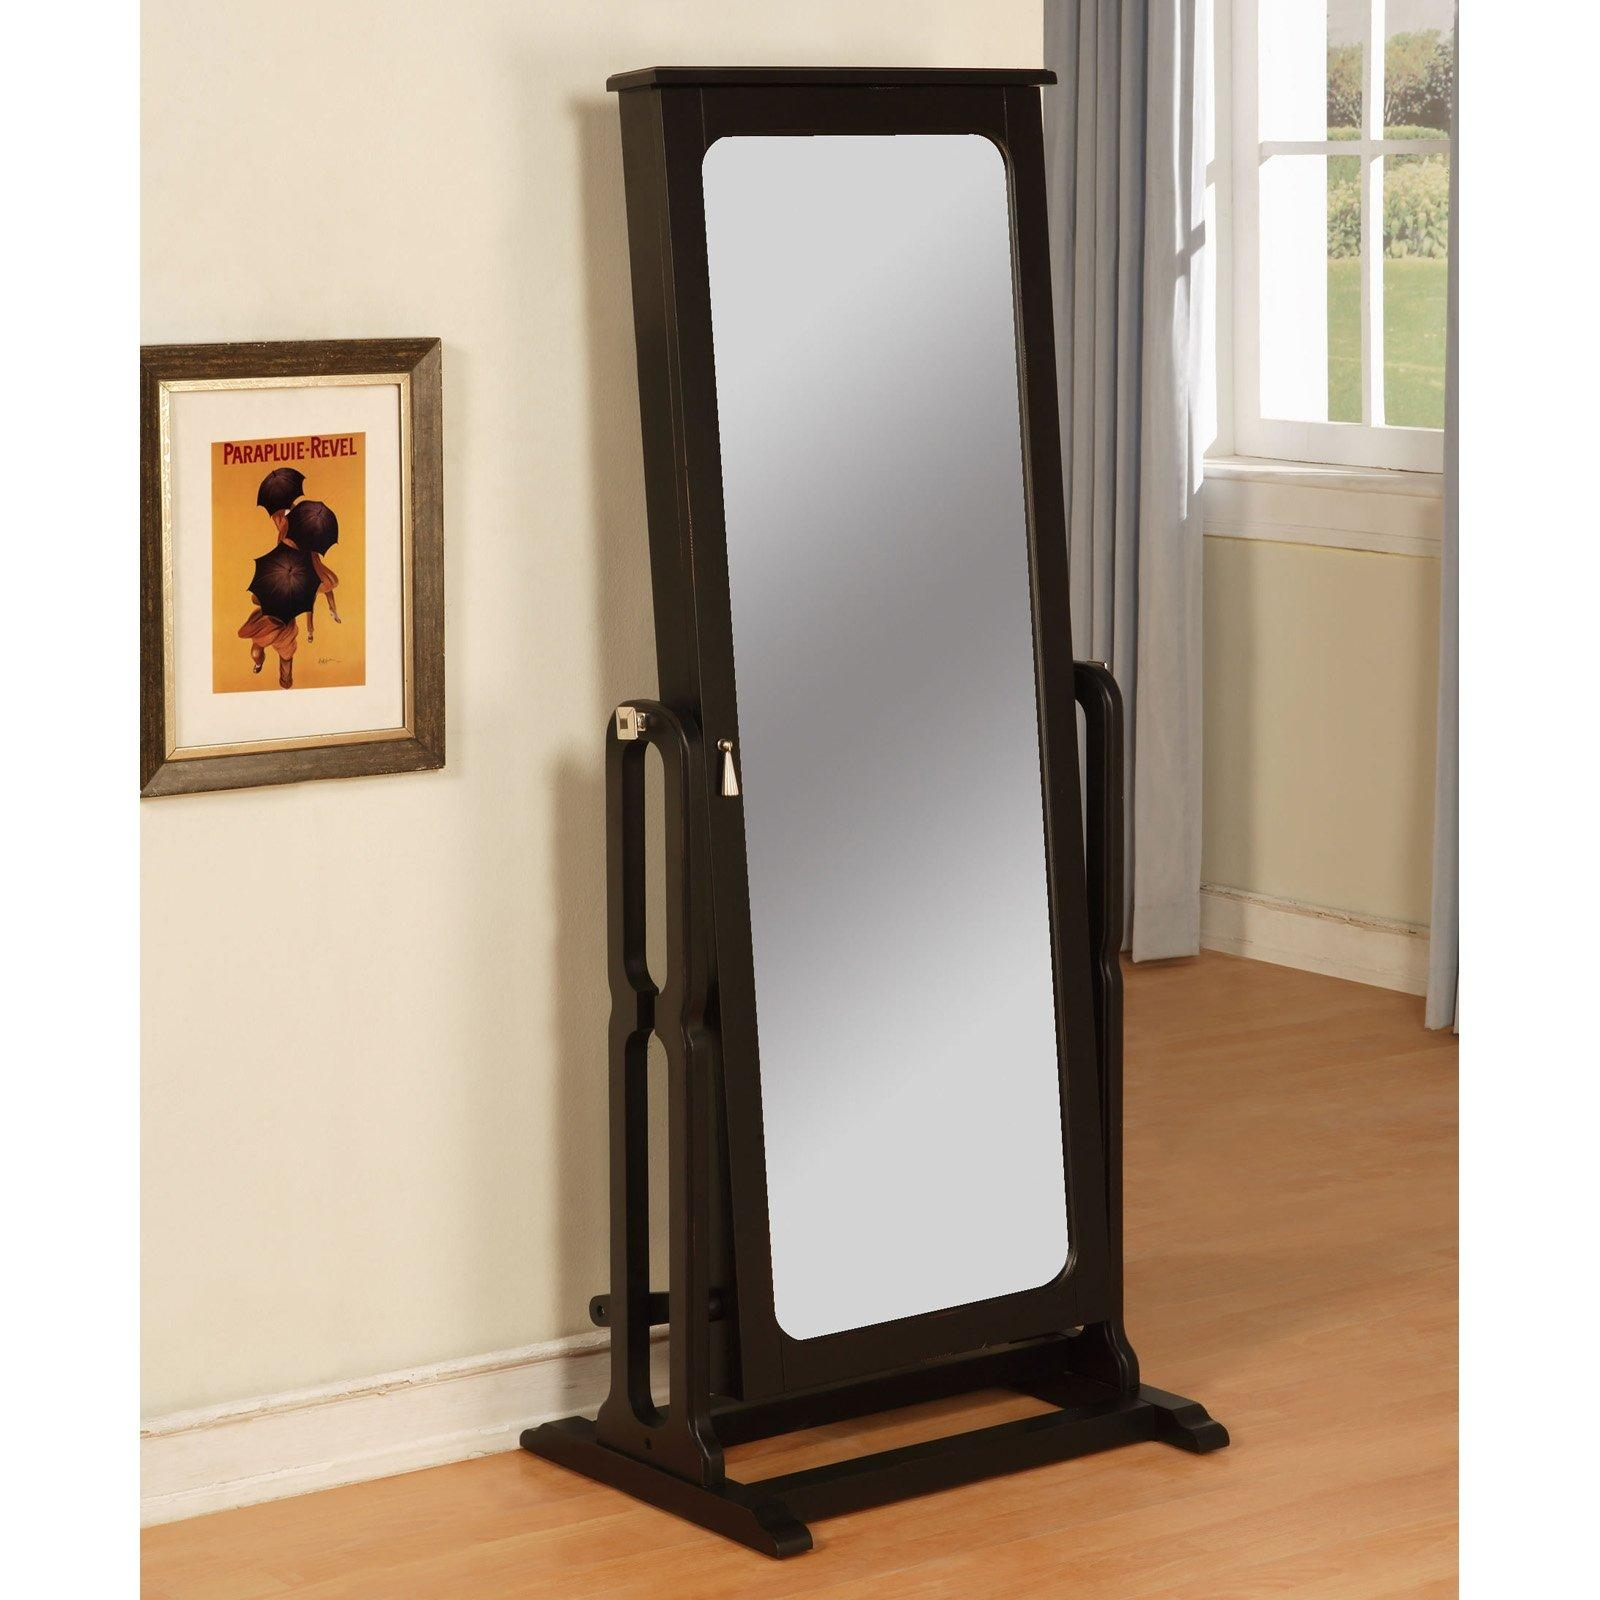 Decorating: Wrought Iron Cheval Mirror With Wooden Floor And Cream For Wrought Iron Standing Mirror (View 14 of 20)